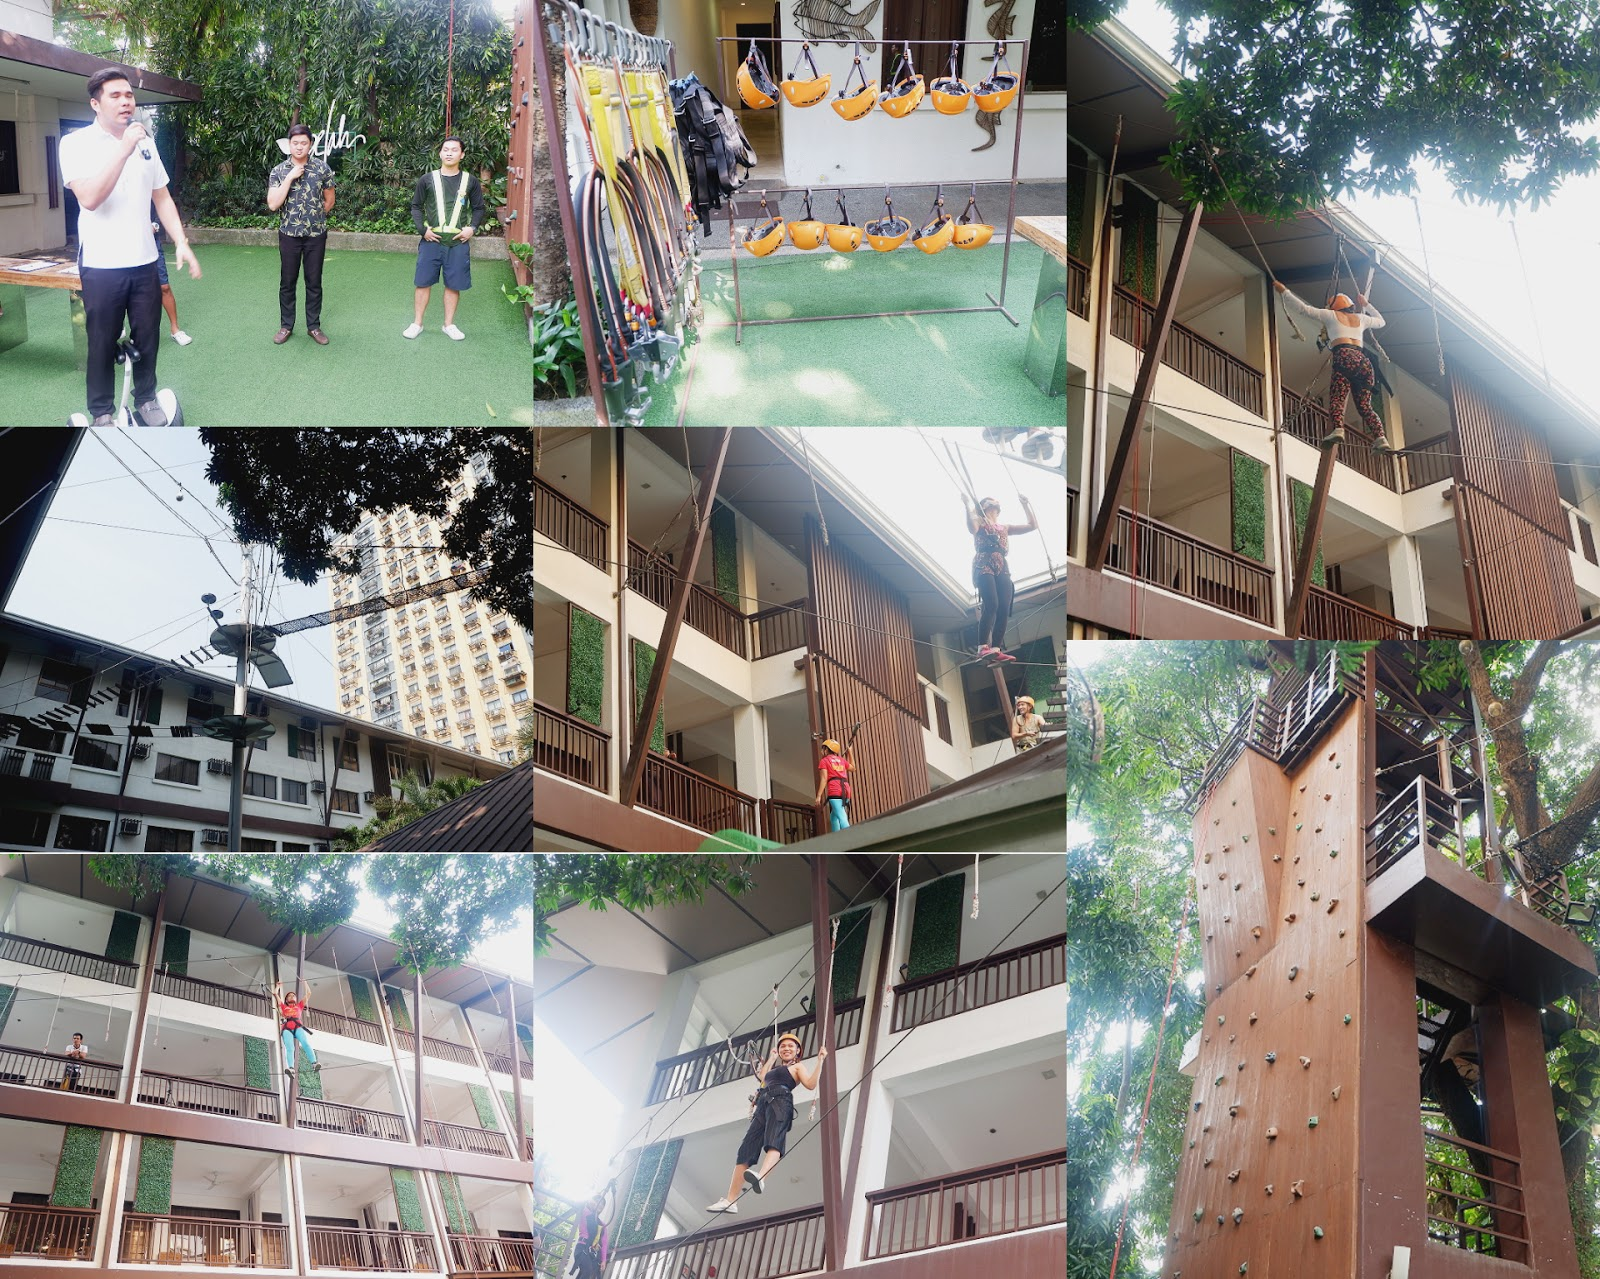 fun group activities at selah garden hotel